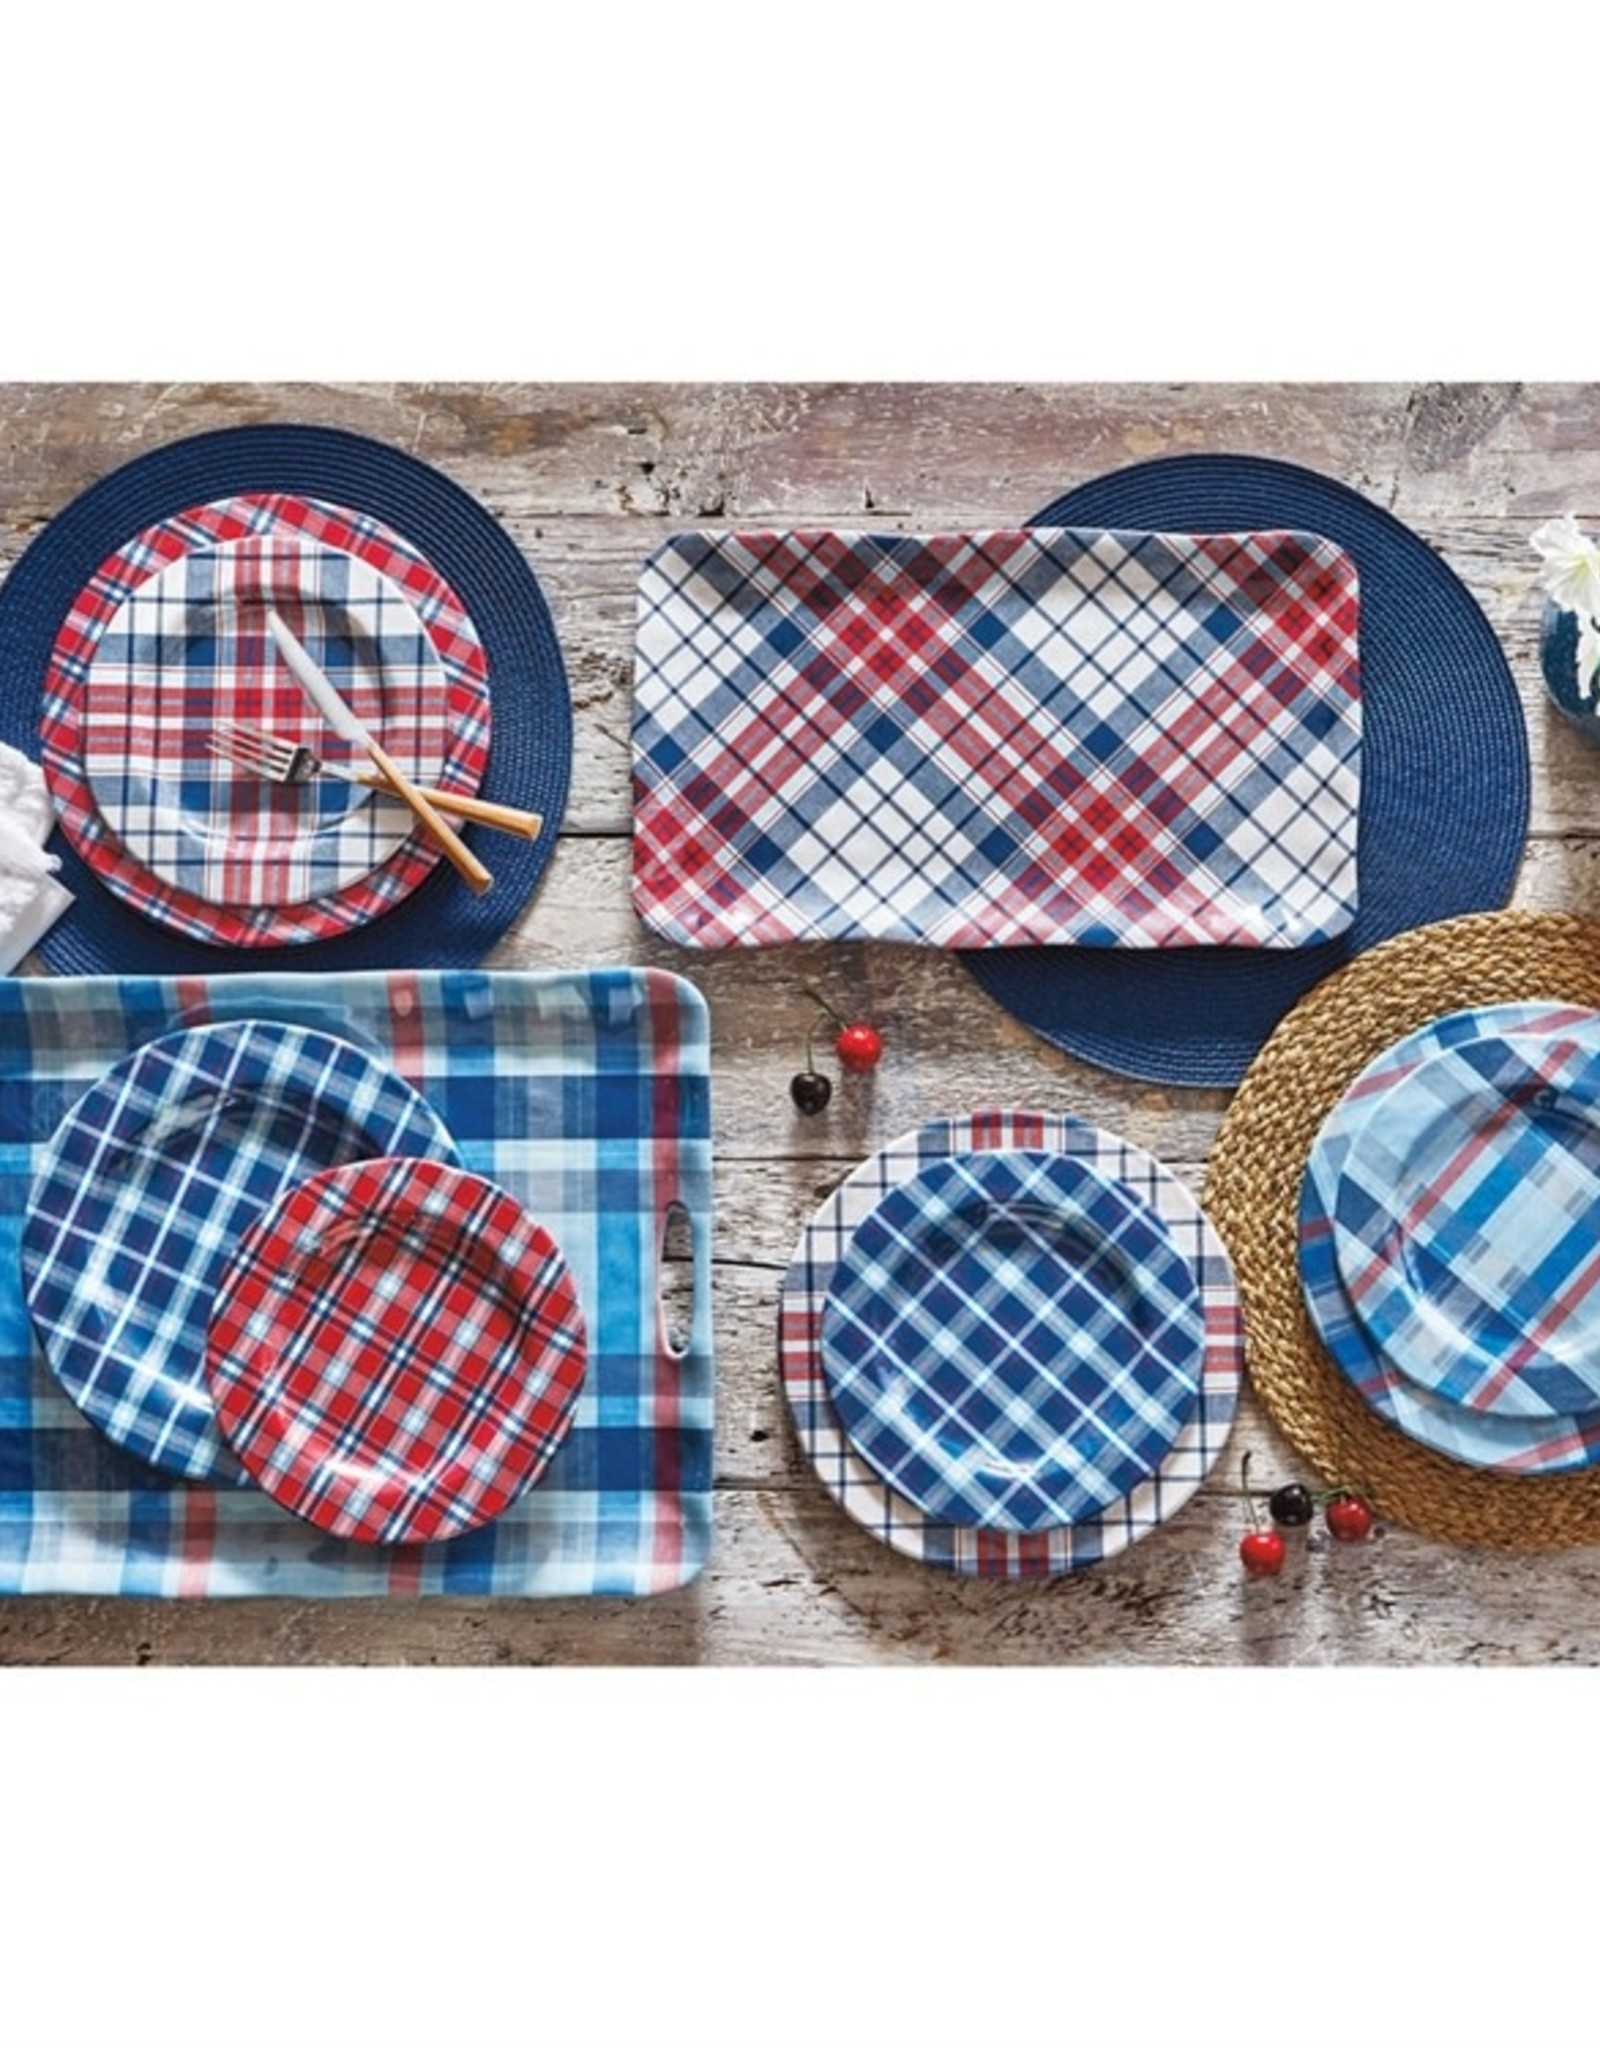 Tag S20 Melamine Dinner Plate S/4, Jessie Red Plaid